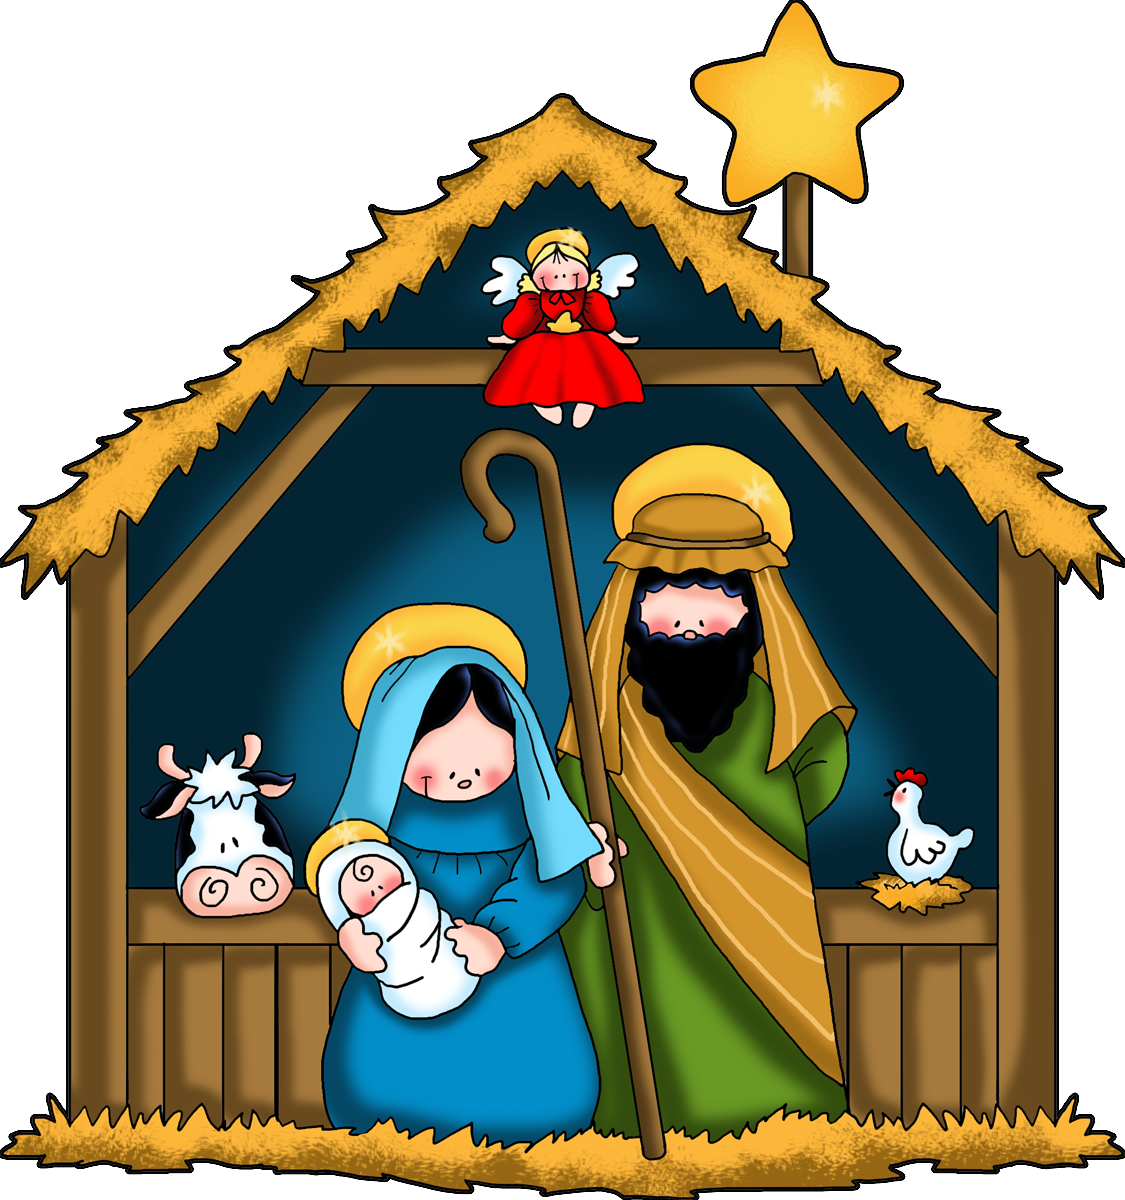 the nativity children free clip art google search kids rh pinterest com manger clipart black and white manger clipart black and white